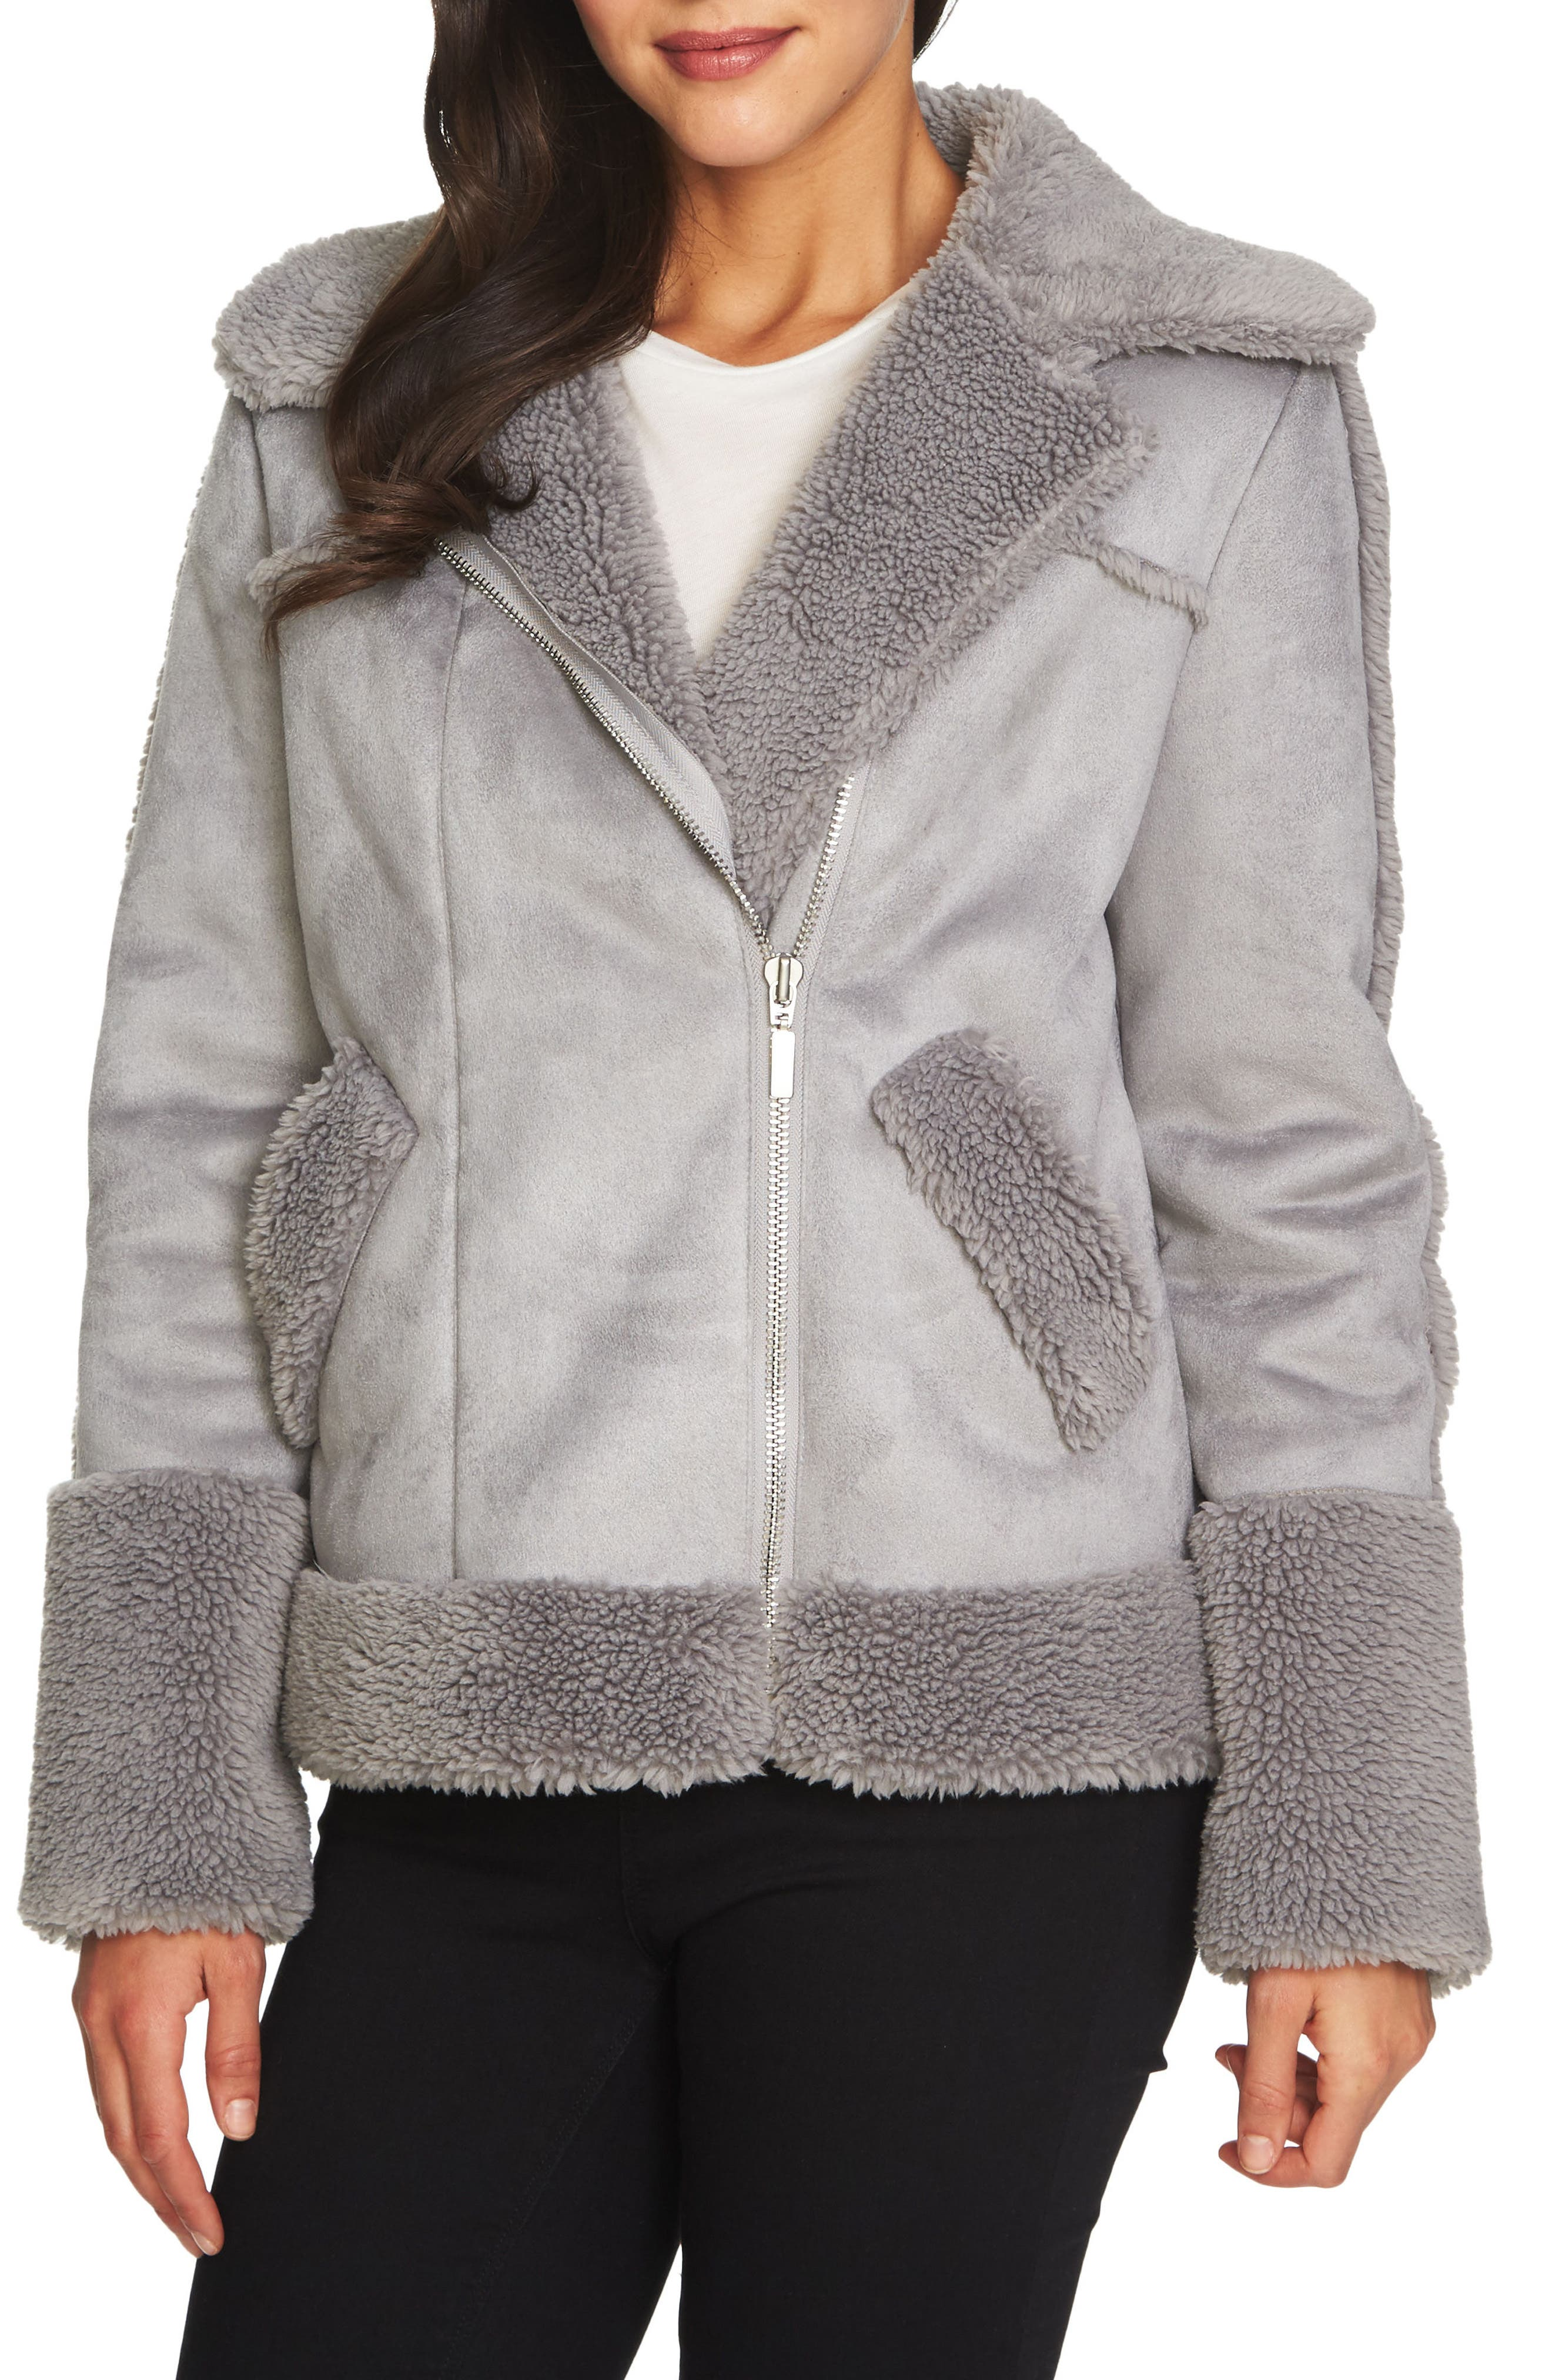 Alternate Image 1 Selected - 1.STATE Faux Shearling Moto Jacket